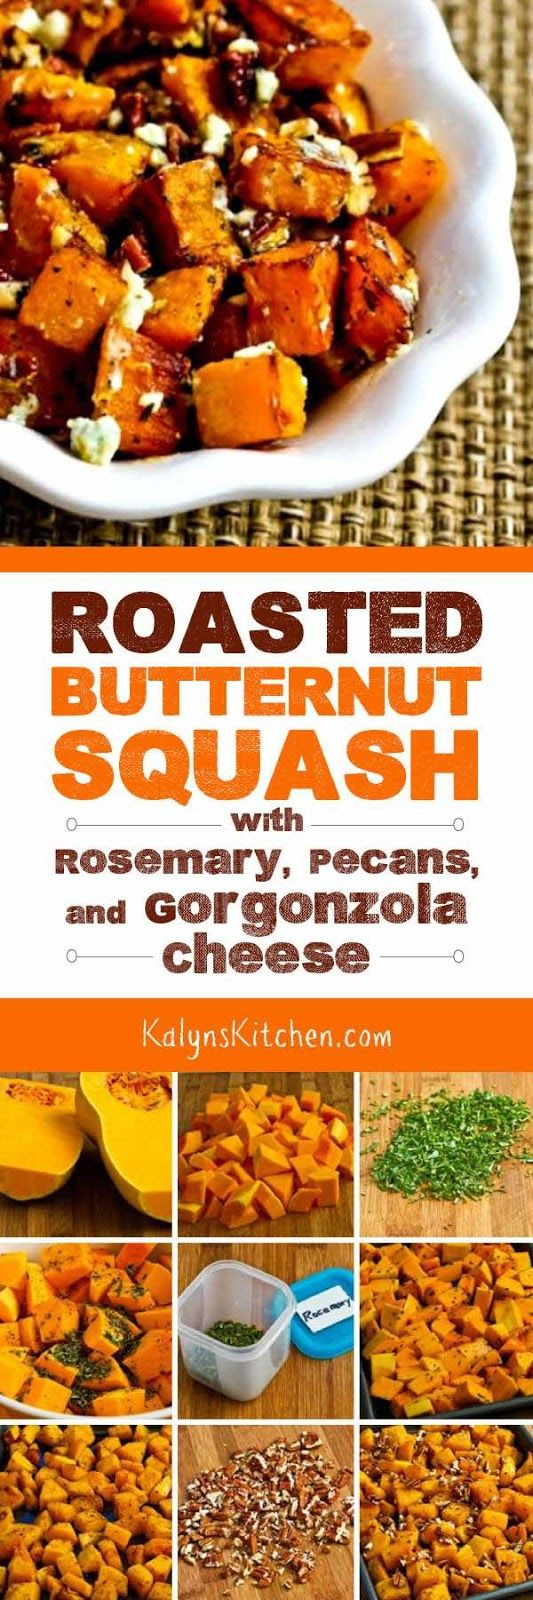 Roasted Butternut Squash with Rosemary, Pecans, and Gorgonzola Cheese ...